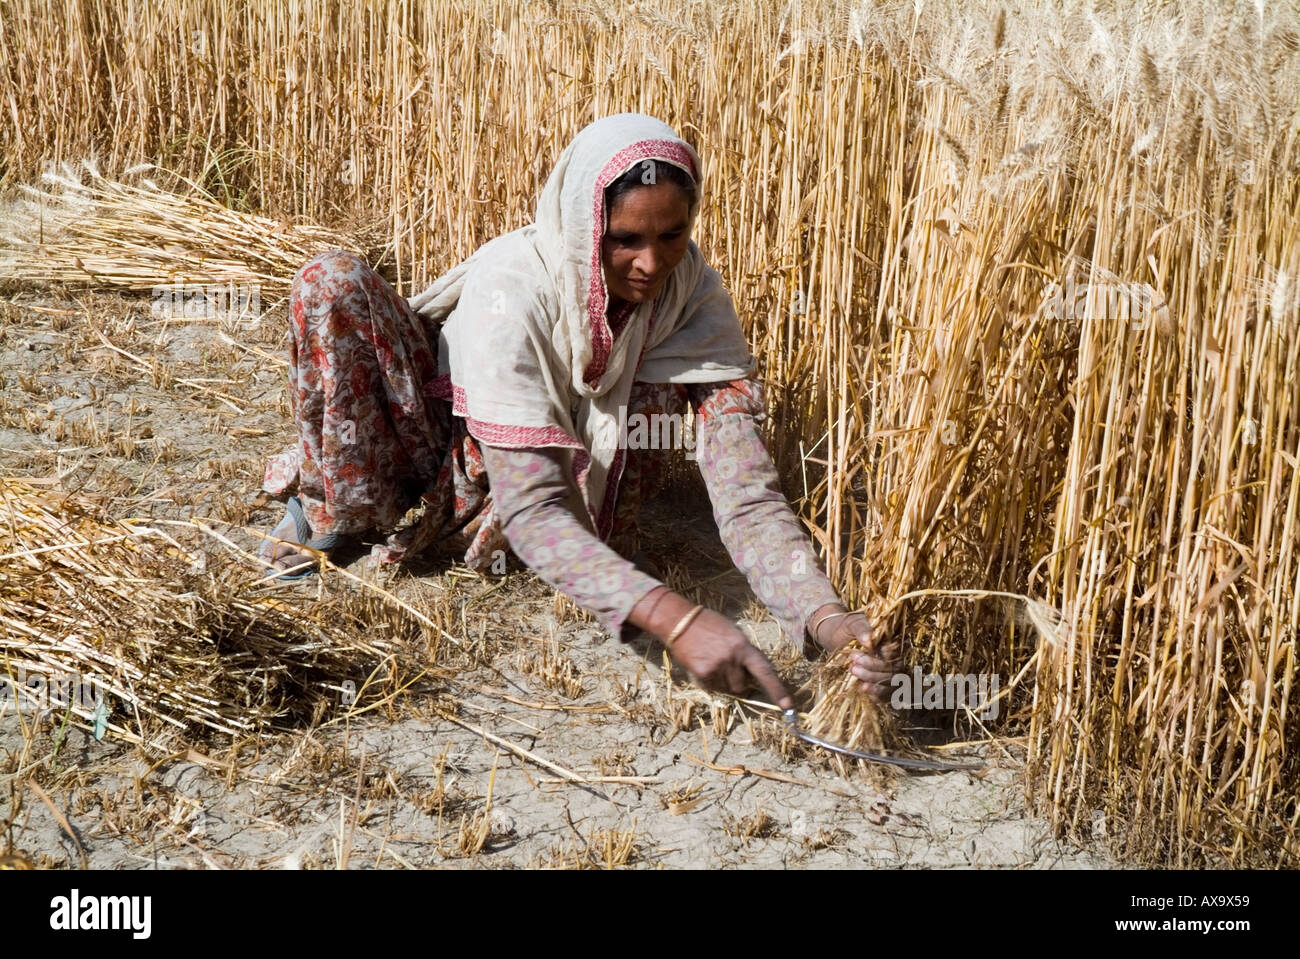 Woman Labourer Cutting Wheat by Hand - Stock Image